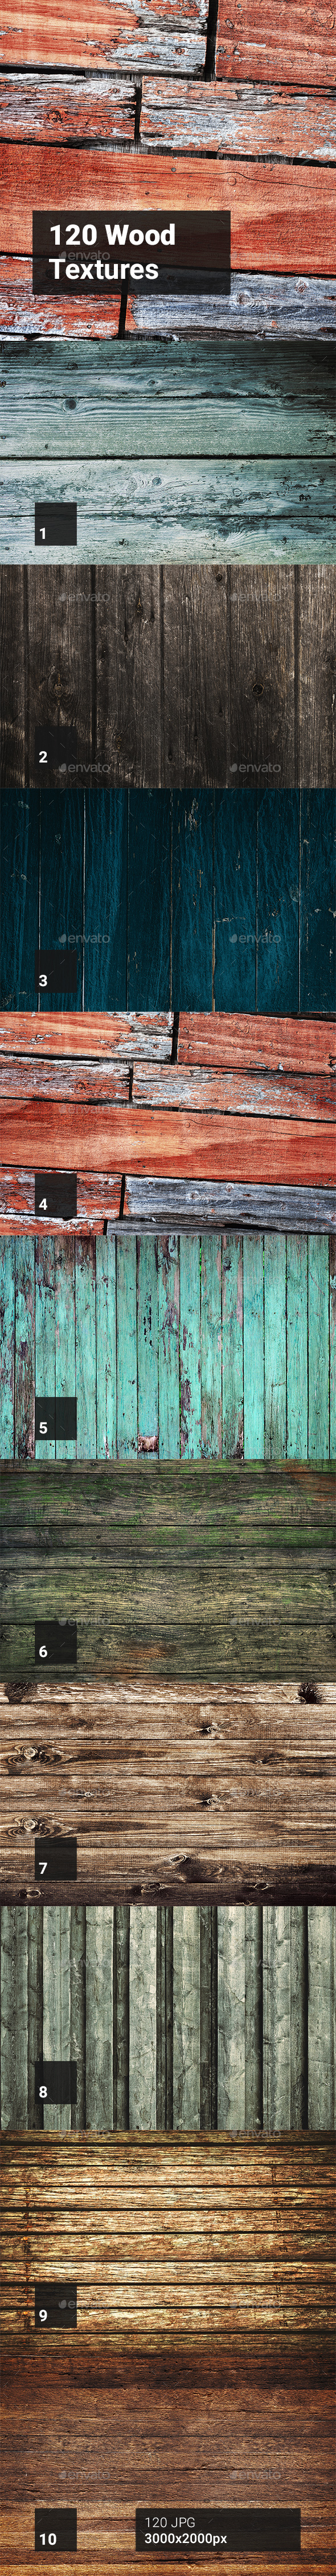 120 Wood Textures - Abstract Backgrounds